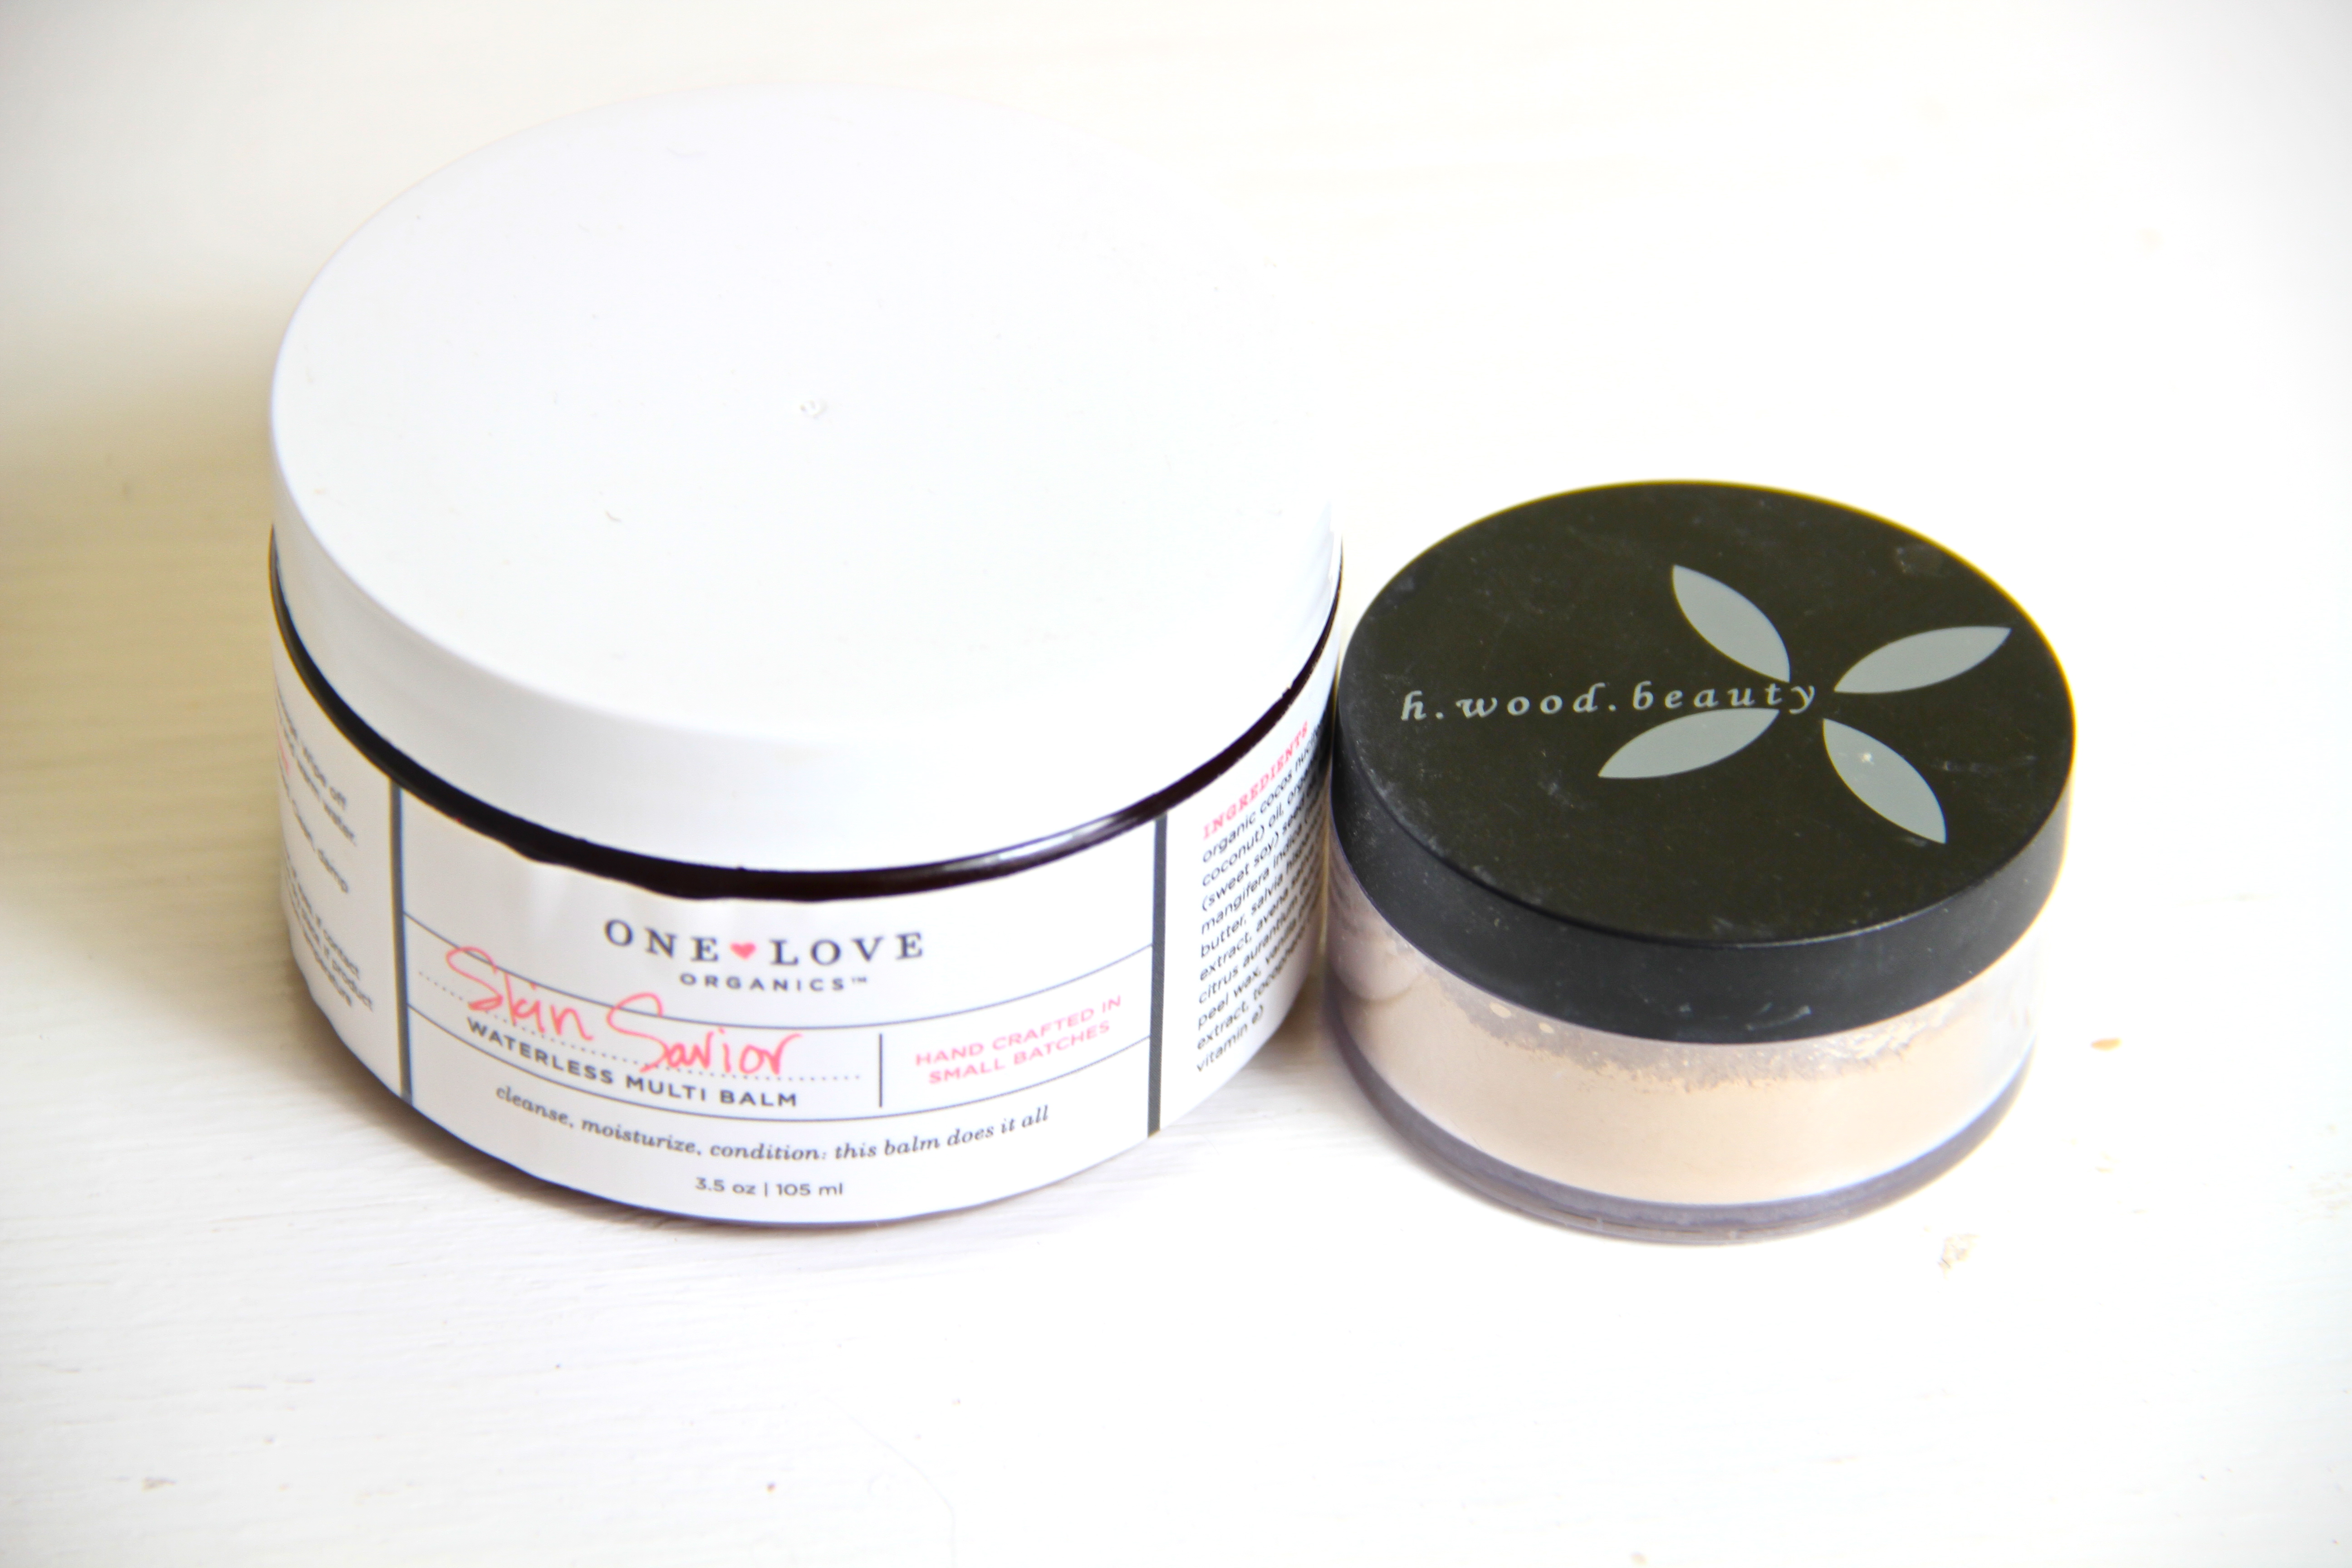 The Best Mineral Foundation For Dry Skin